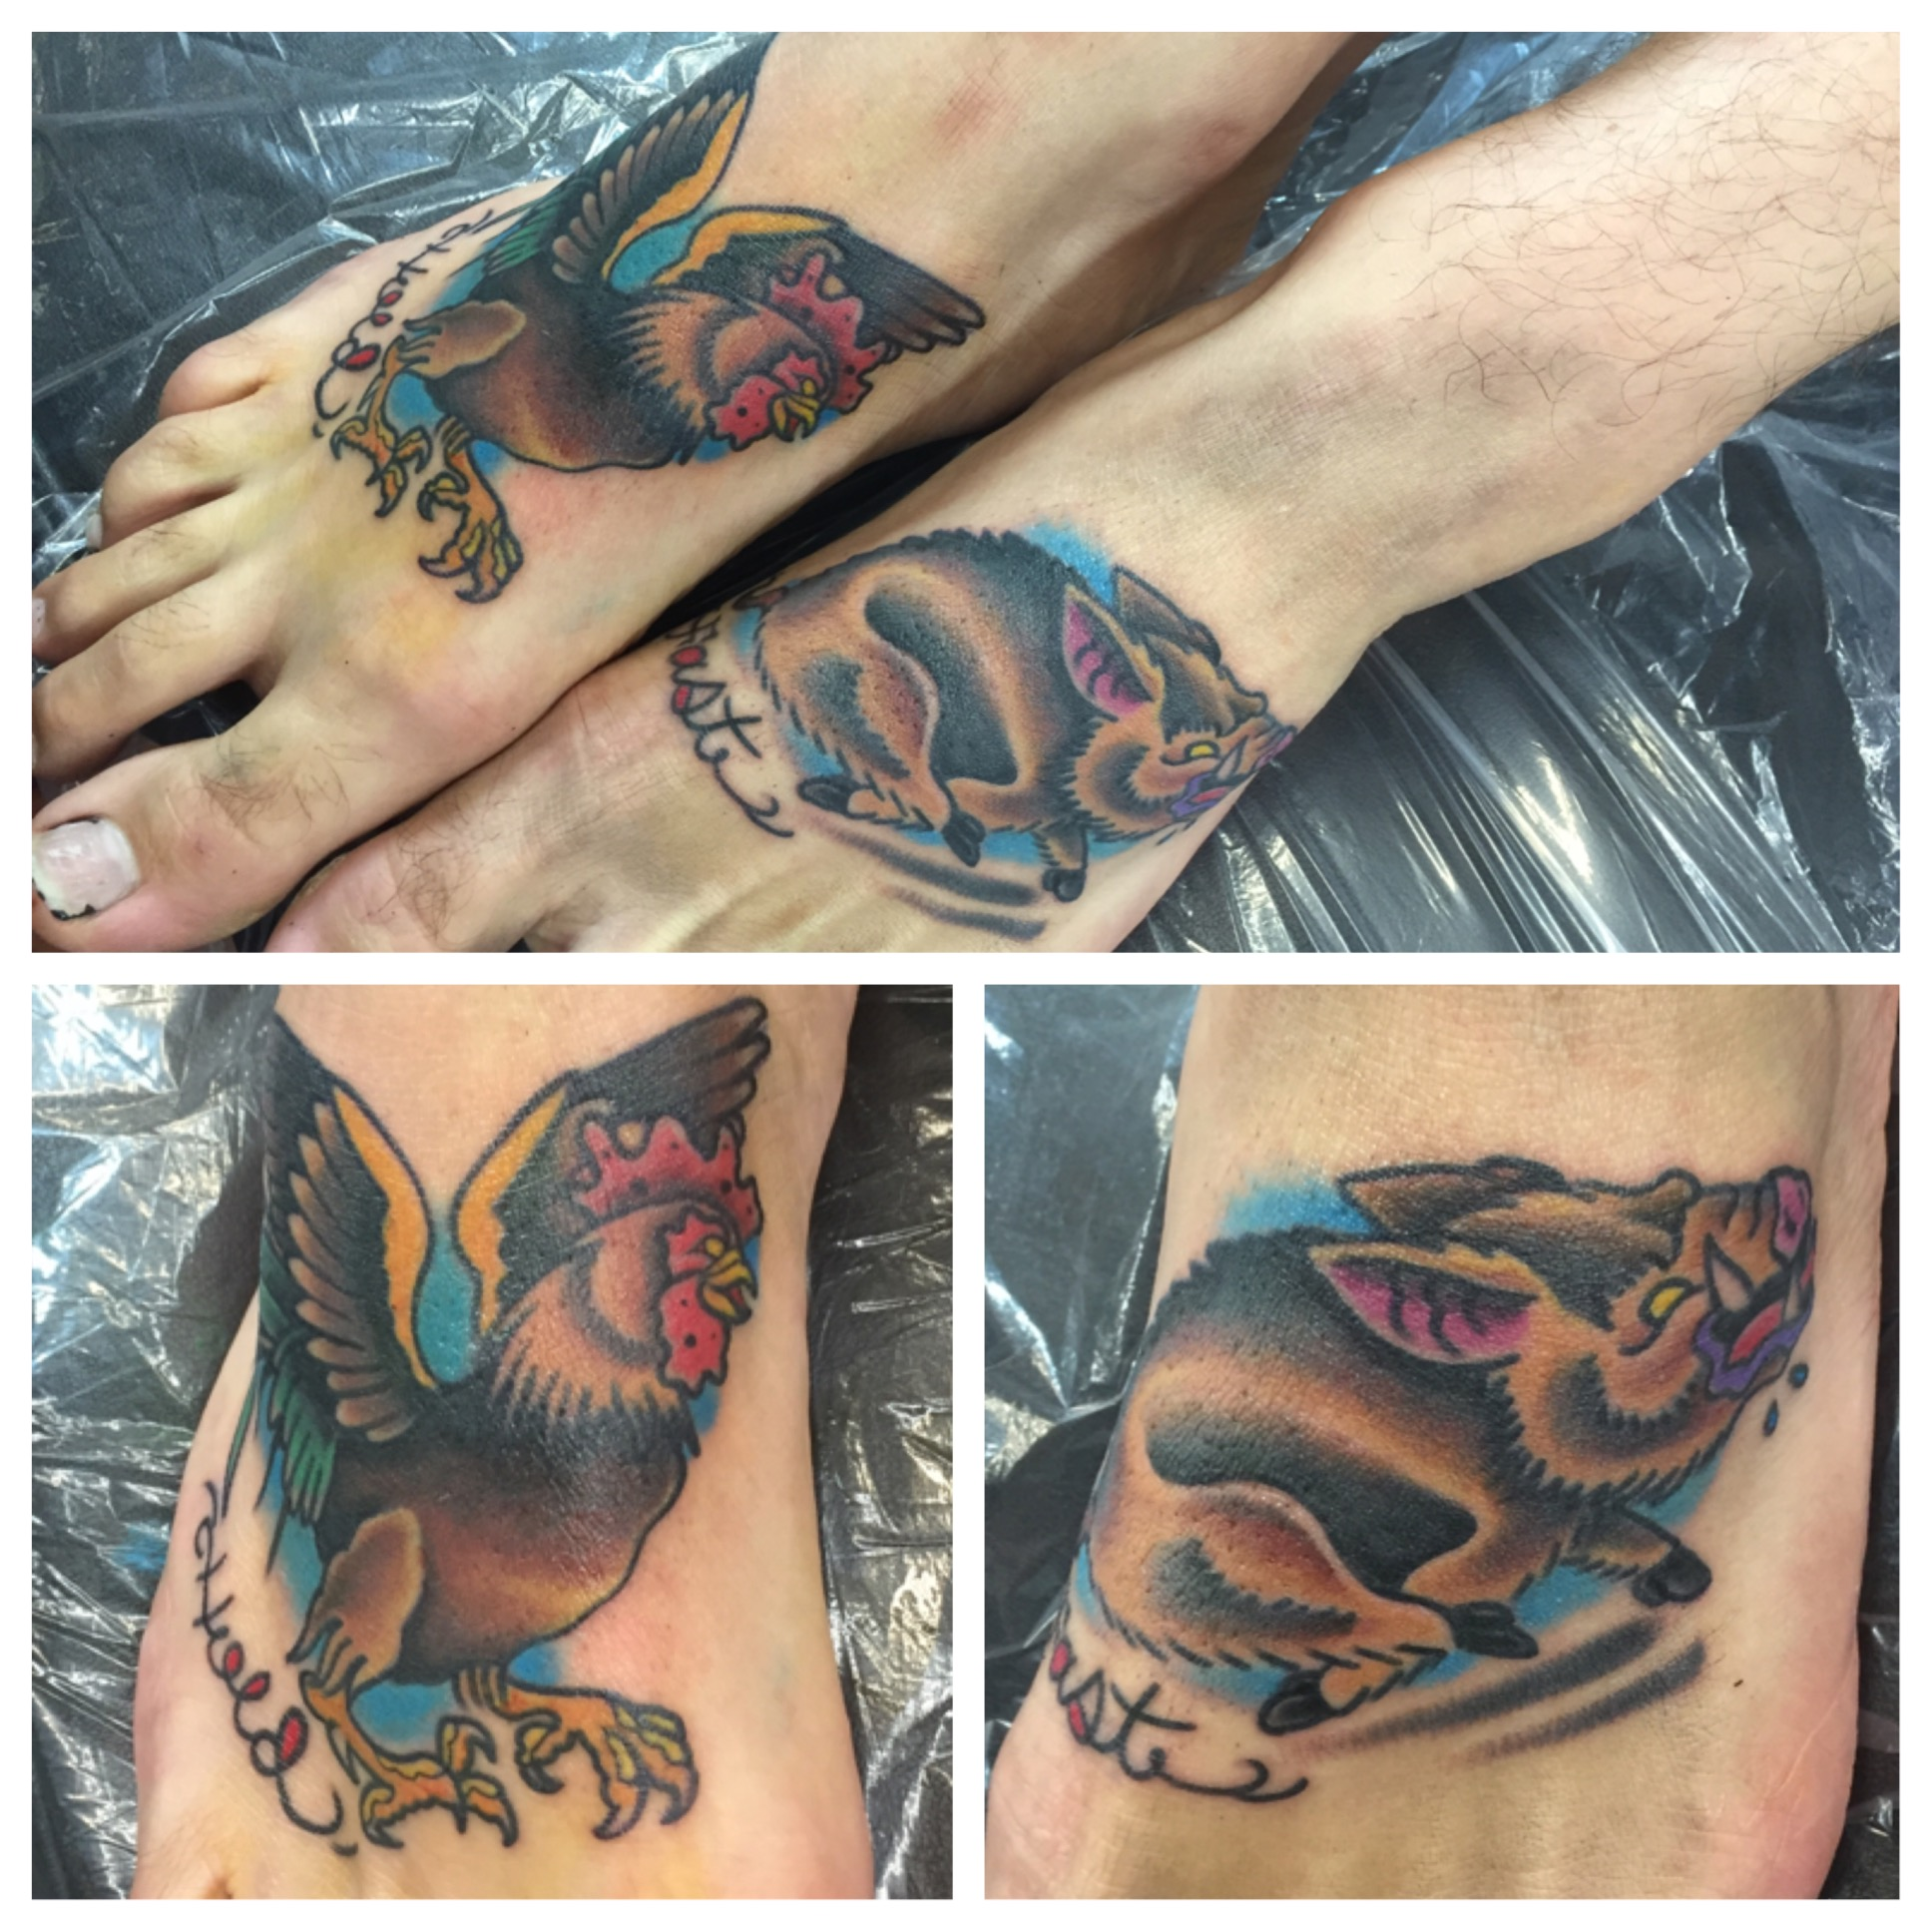 American traditional tattoo of rooster and pig on feet